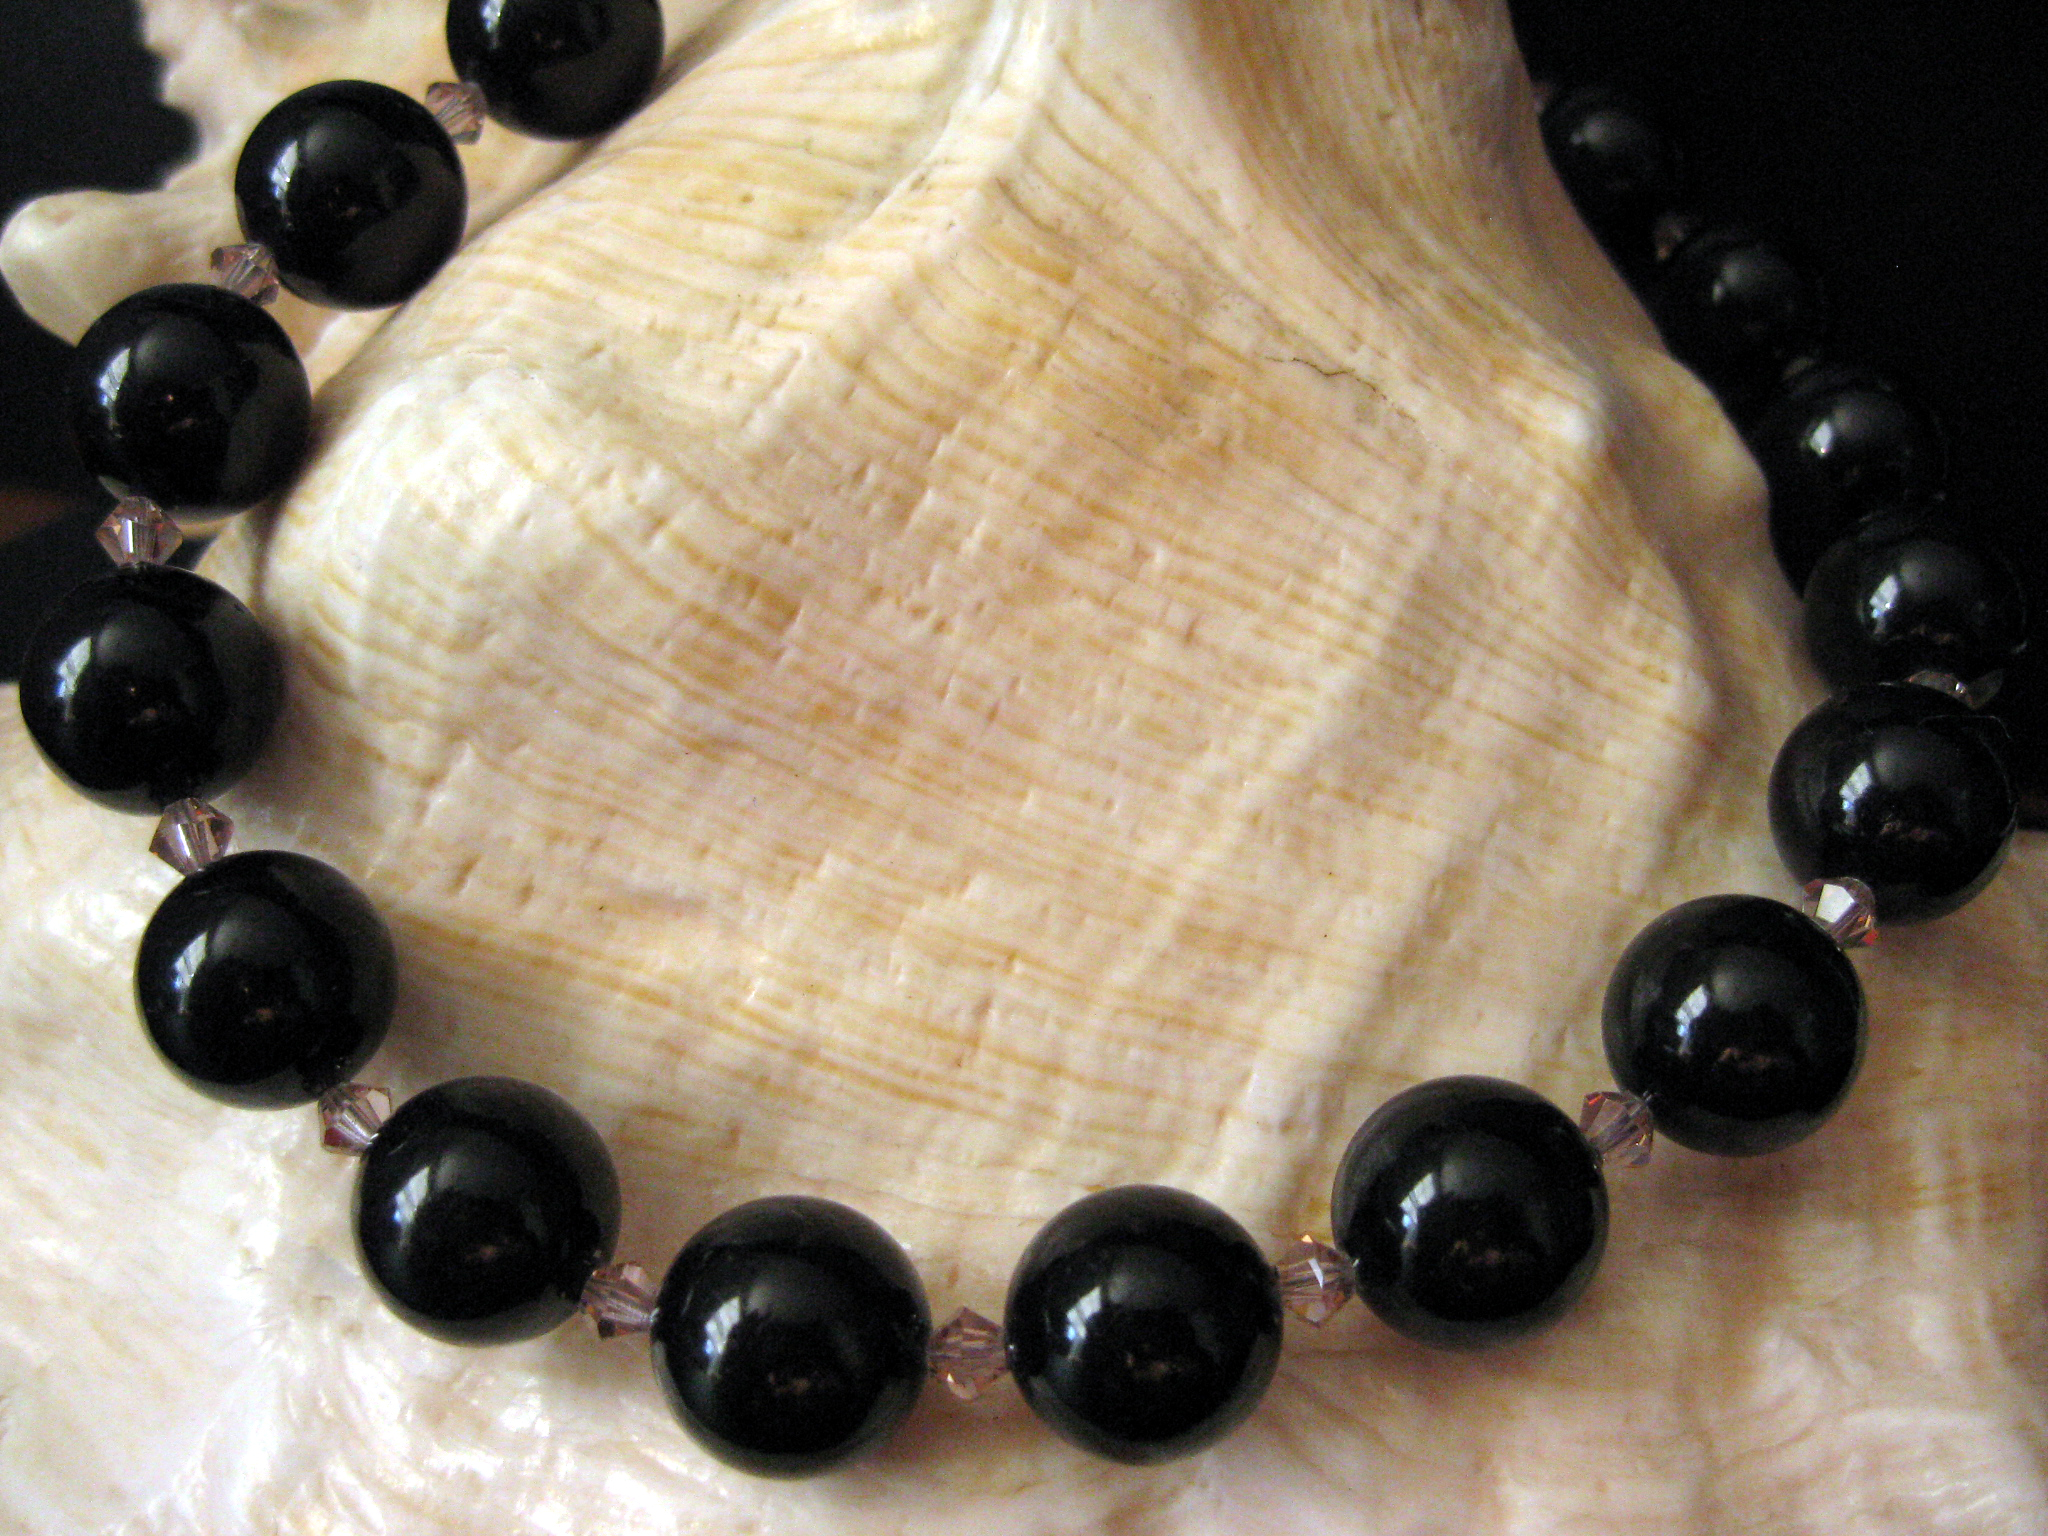 To acquire Pearls Black in oysters pictures pictures trends